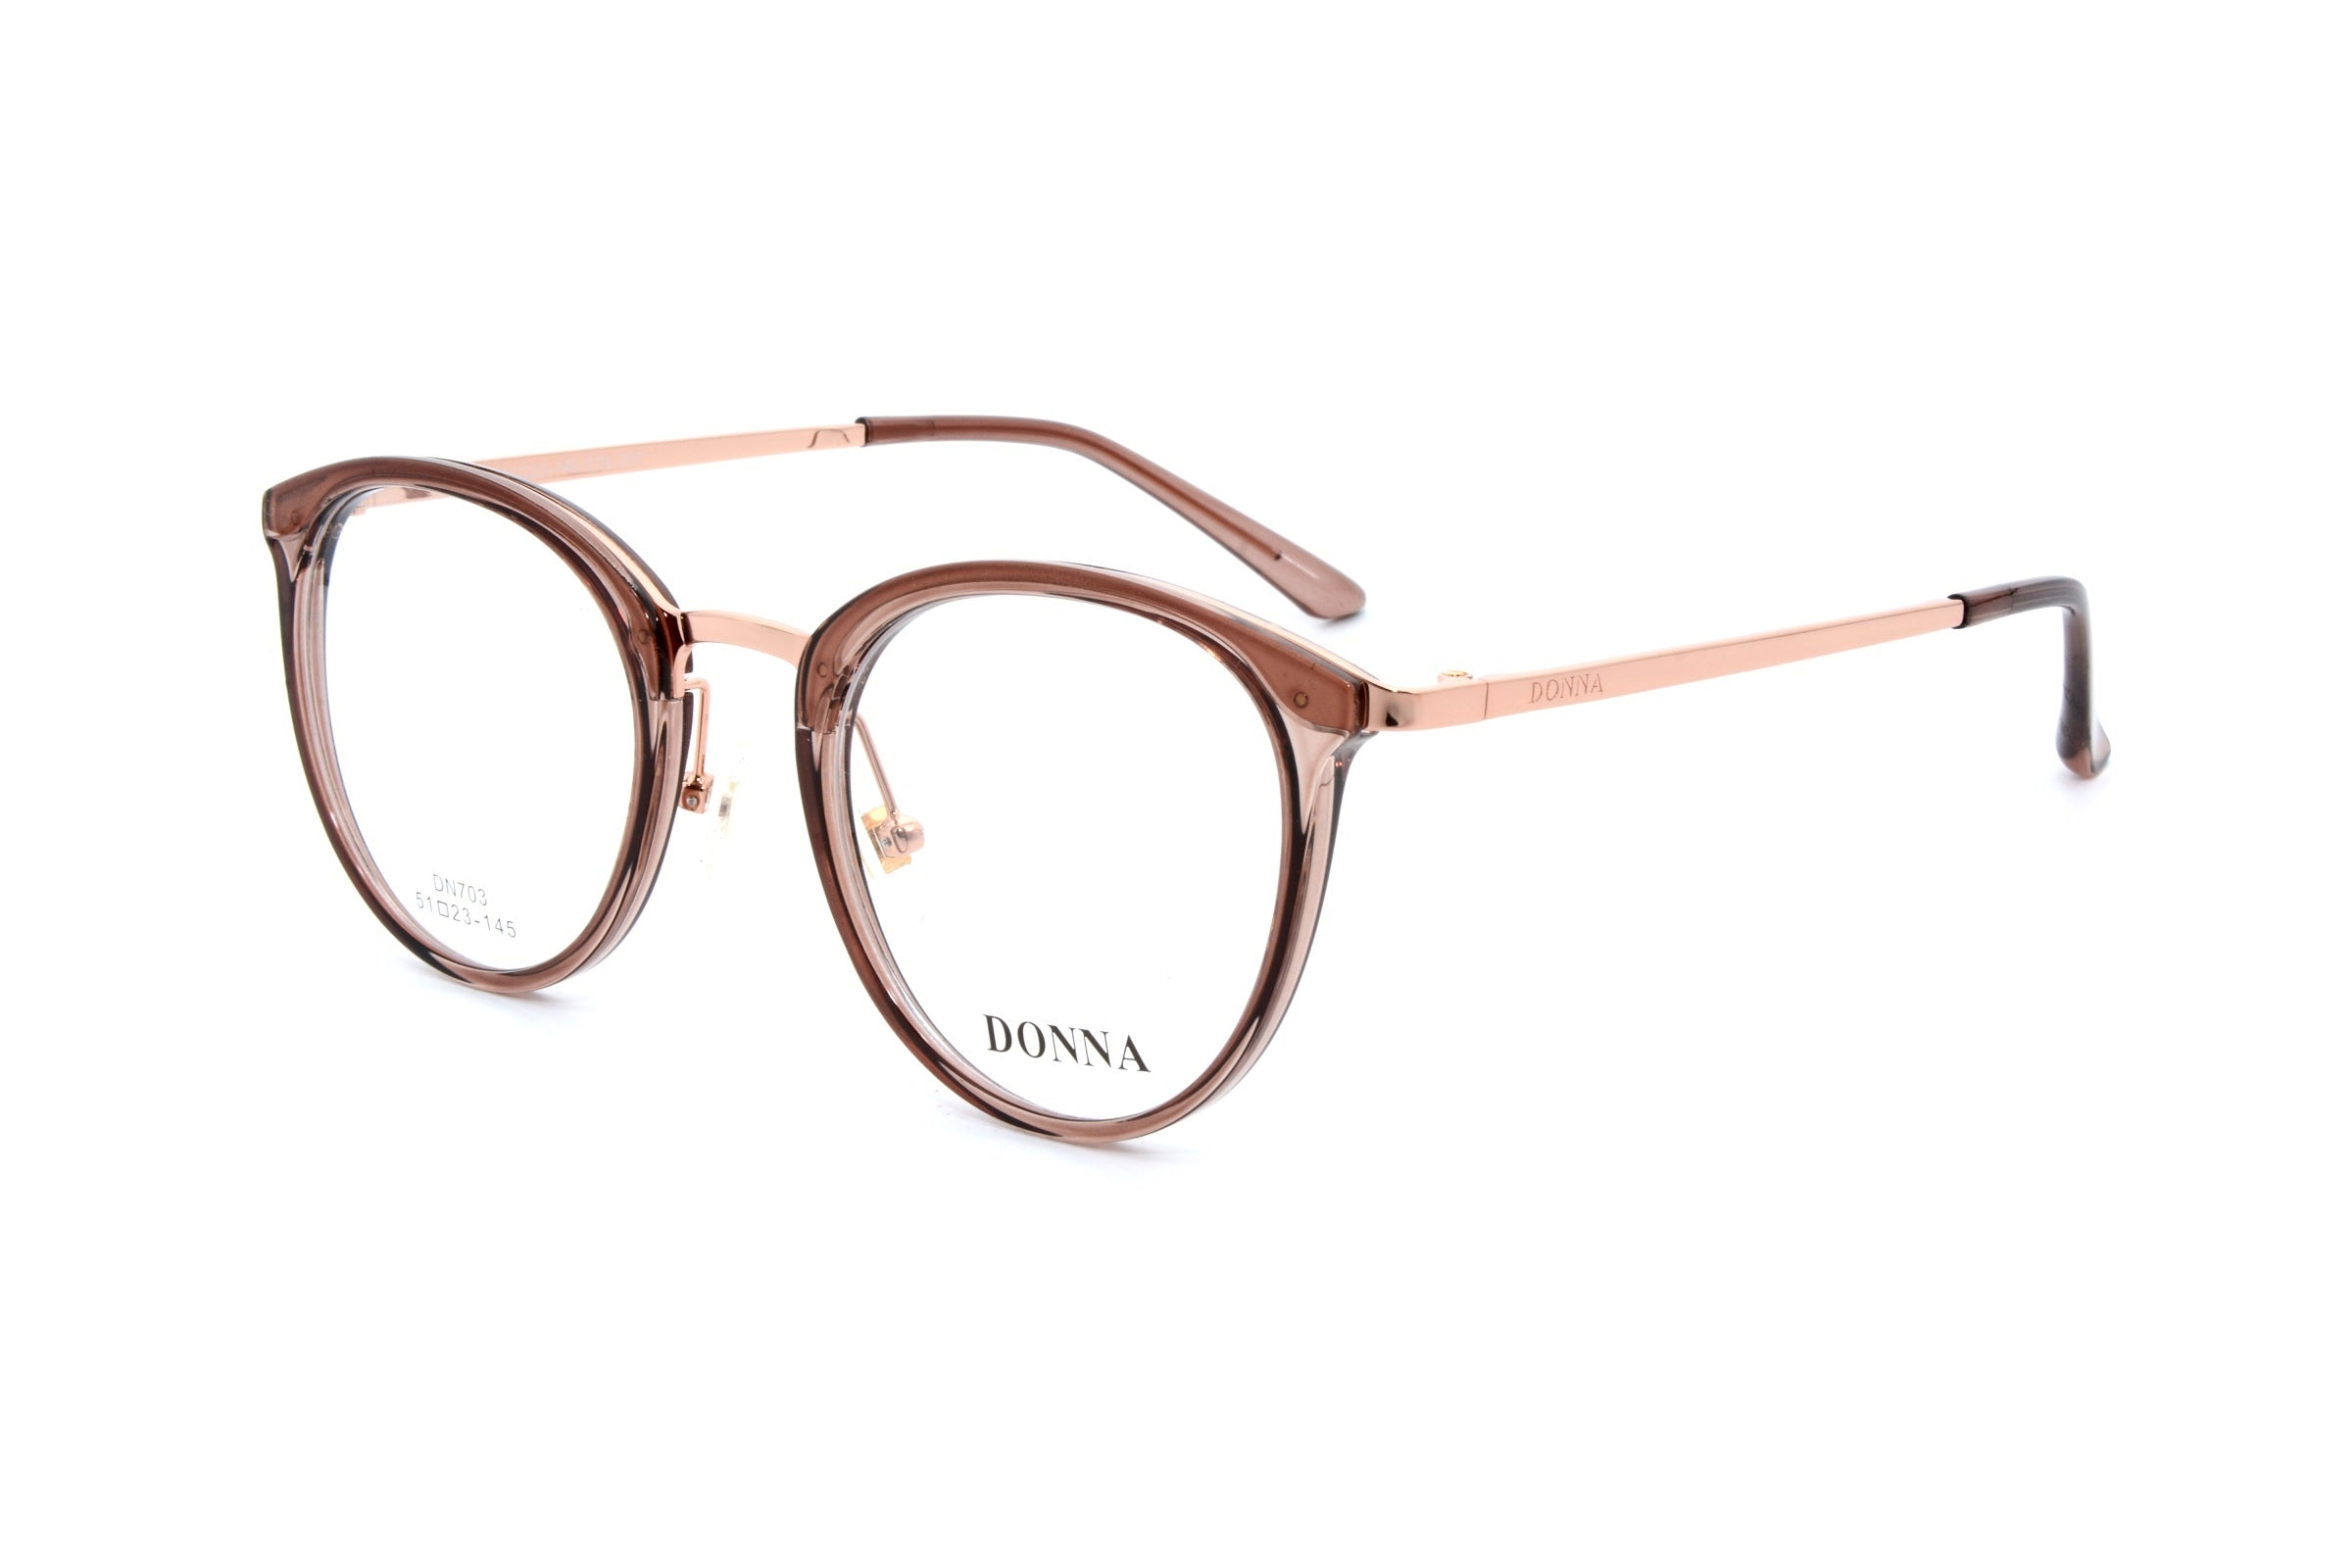 Donna eyewear 703, C005 - Optics Trading